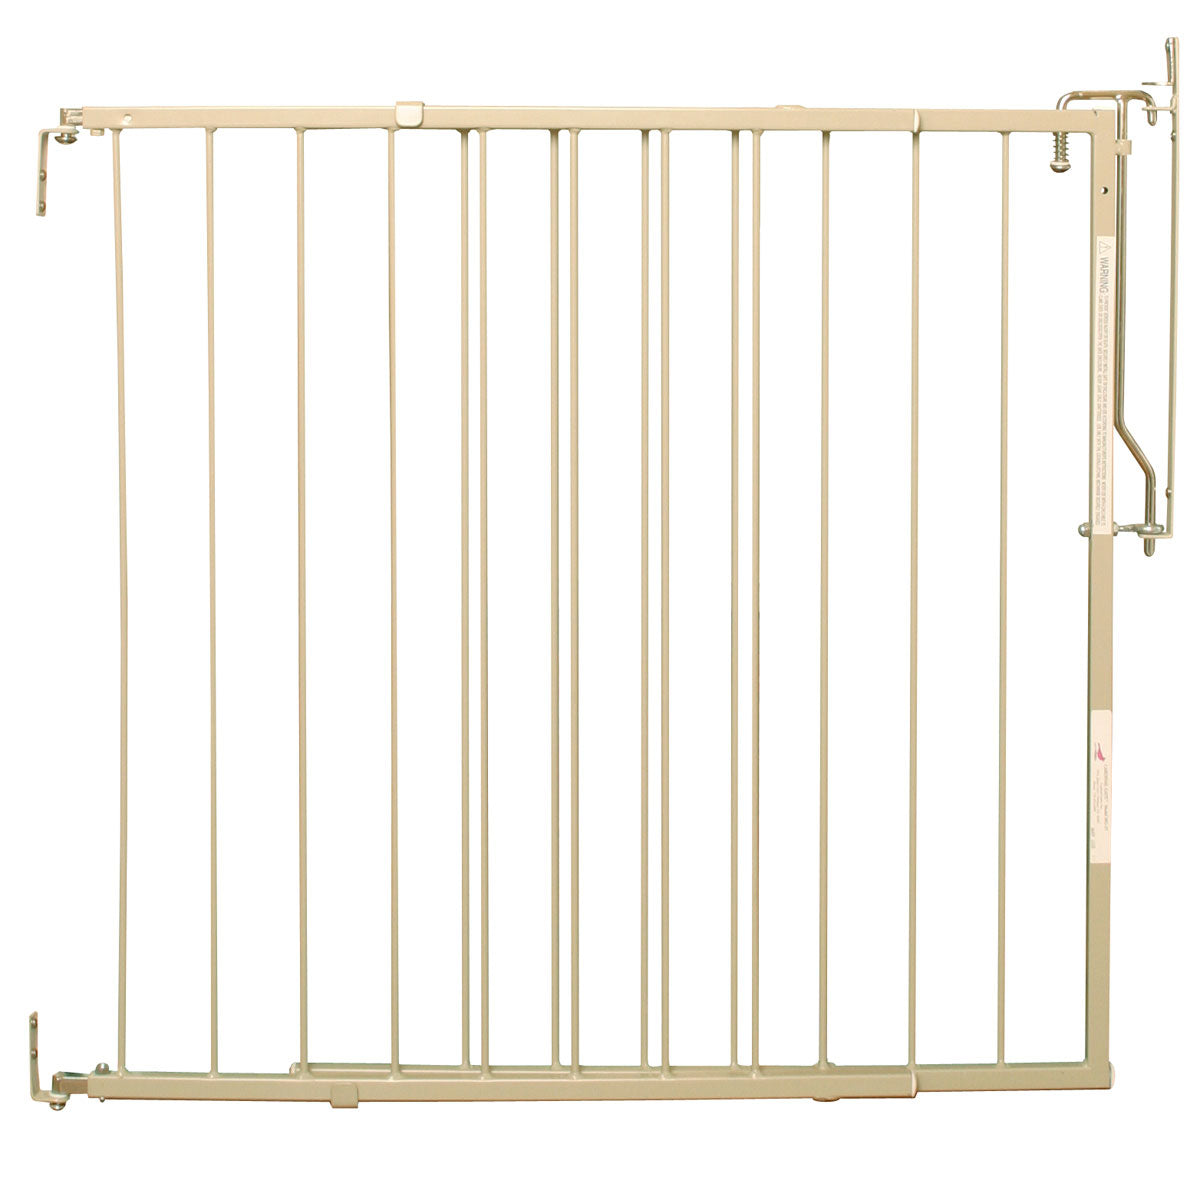 "Cardinal Gates Duragate Hardware Mounted Dog Gate Taupe 26.5"" - 41.5"" x 1.5"" x 29.5"" Dog Gates - London the Local"